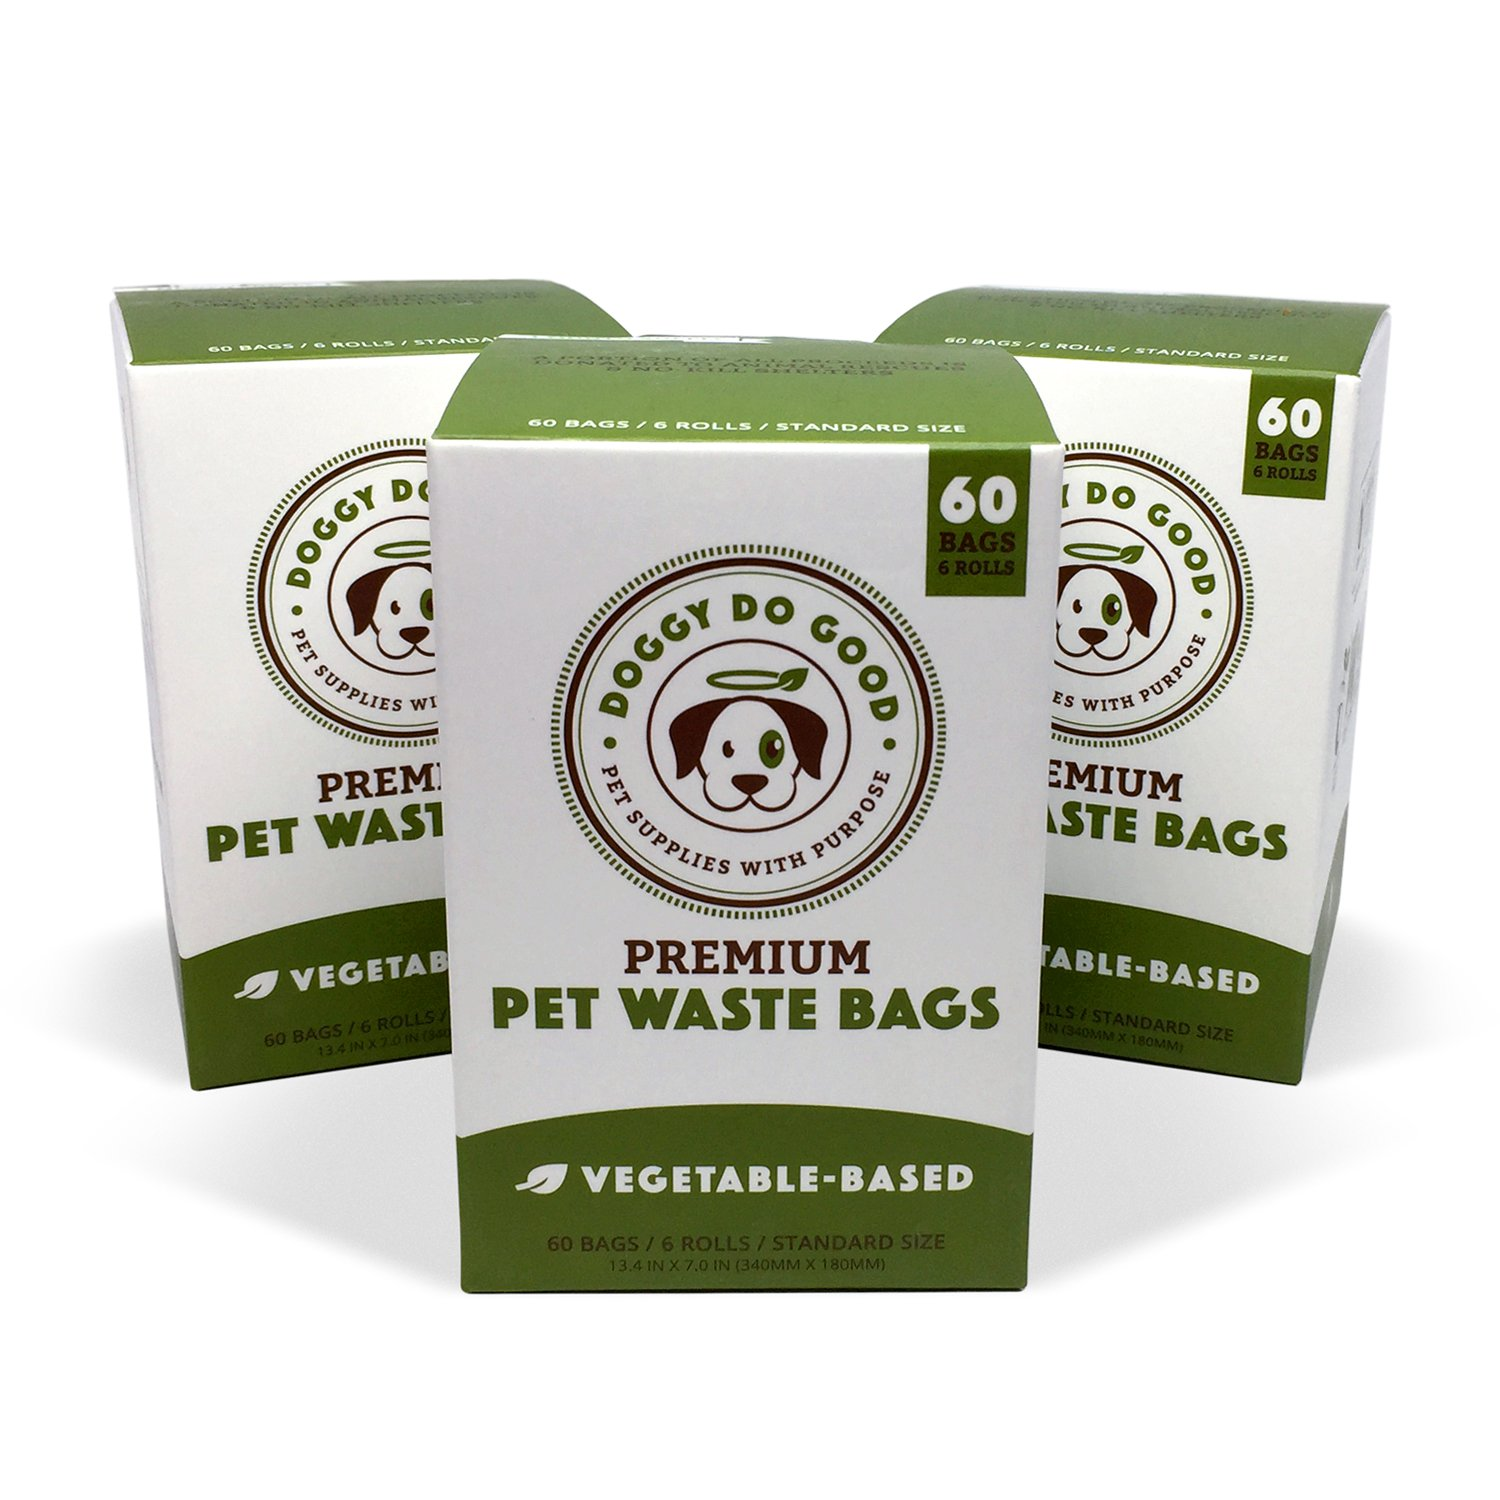 Amazon.com : Doggy Do Good Biodegradable Poop Bags | Premium Vegetable-Based Pet Waste Bags that Lessen the Burden on the Environment & Support Rescues, ...